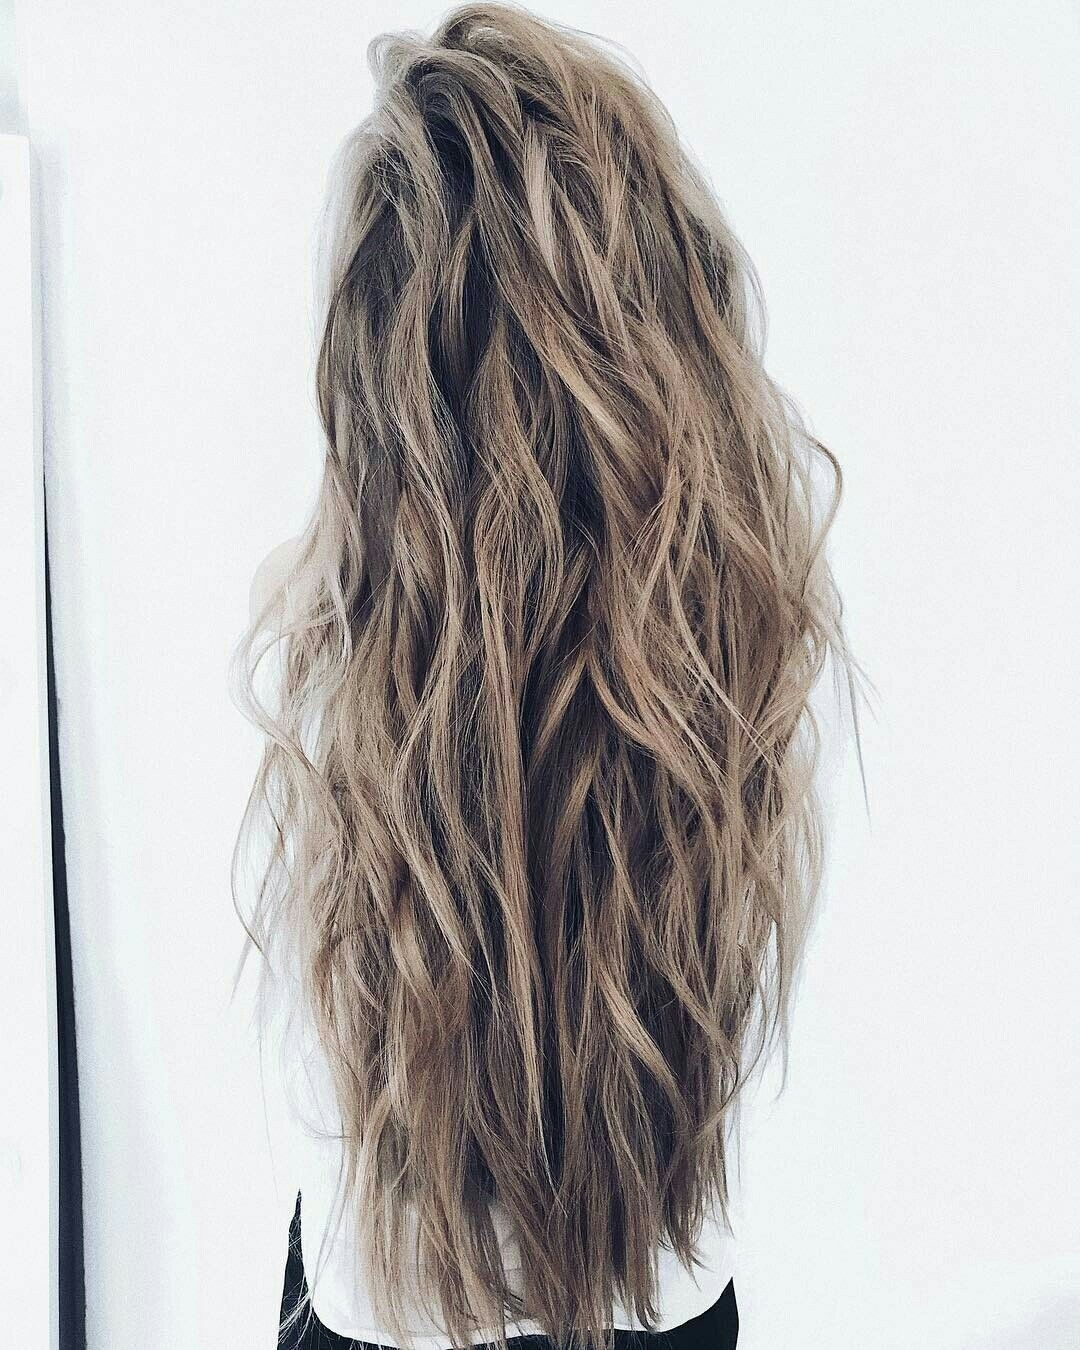 Pin By Blind King On Walpaper Hair Styles Long Hair Styles Hair Color 2018